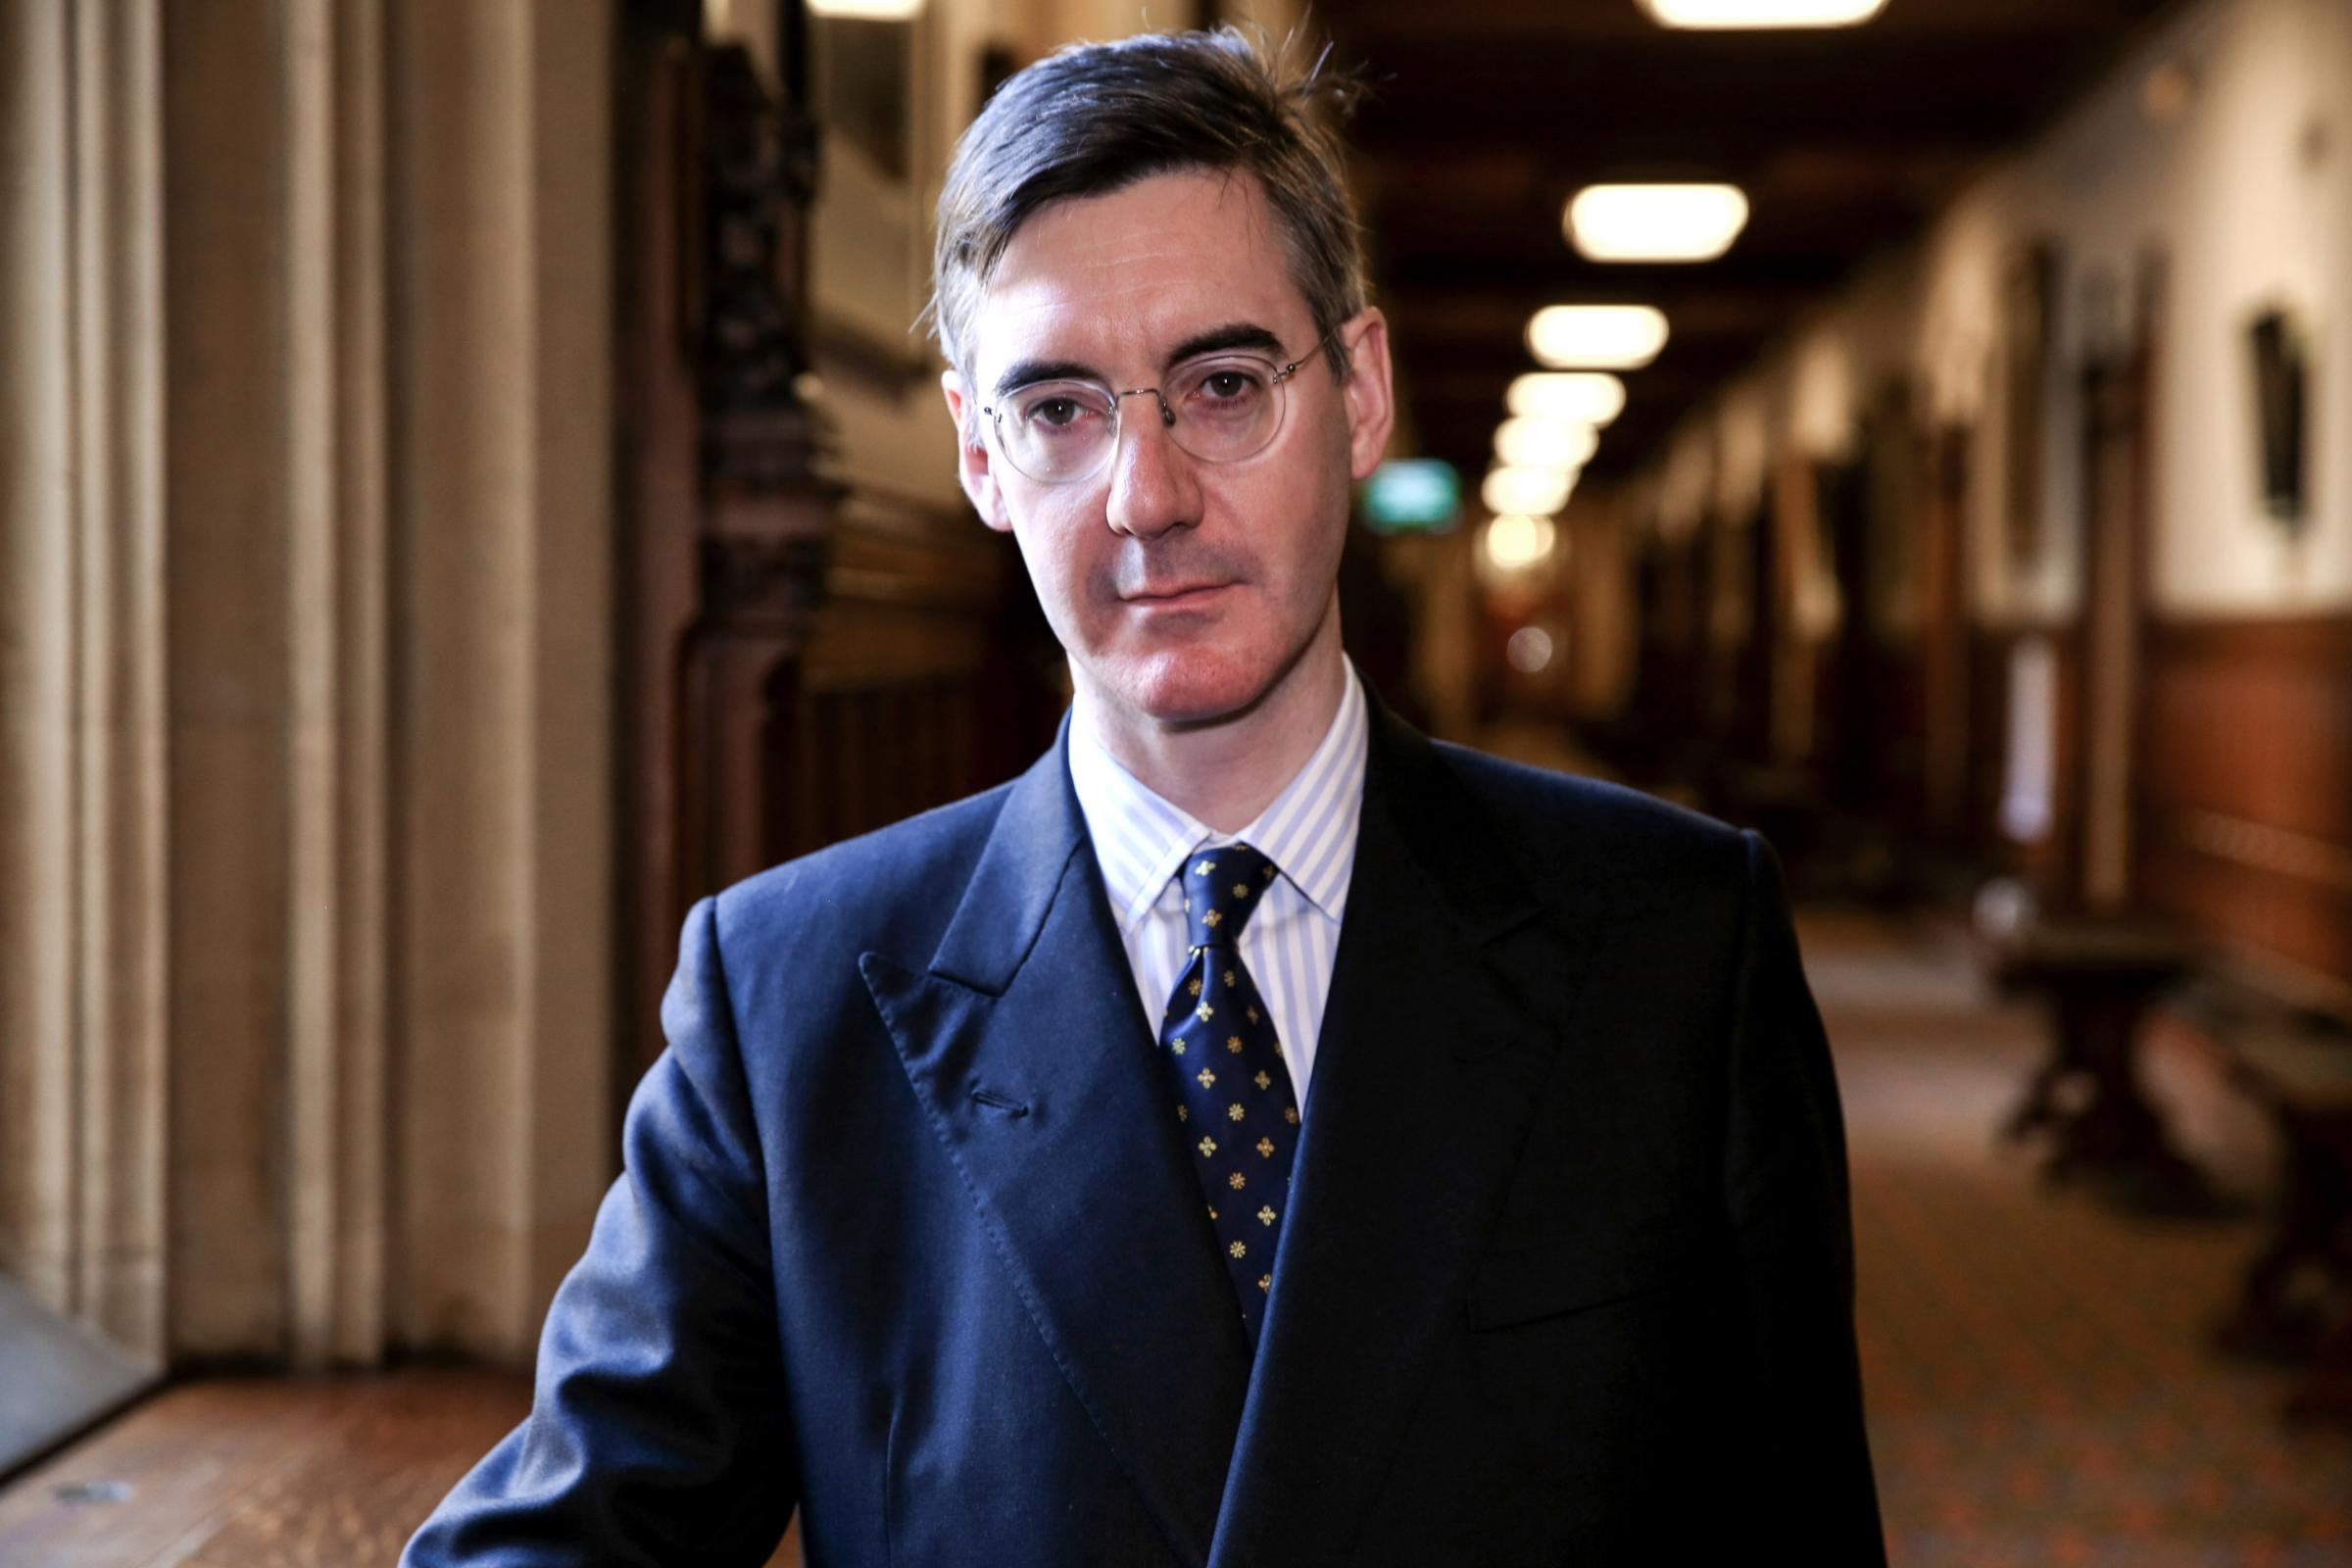 Rees-Mogg: UK not seen 'such vassalage to continent since King John paid homage to King of France in 1200'